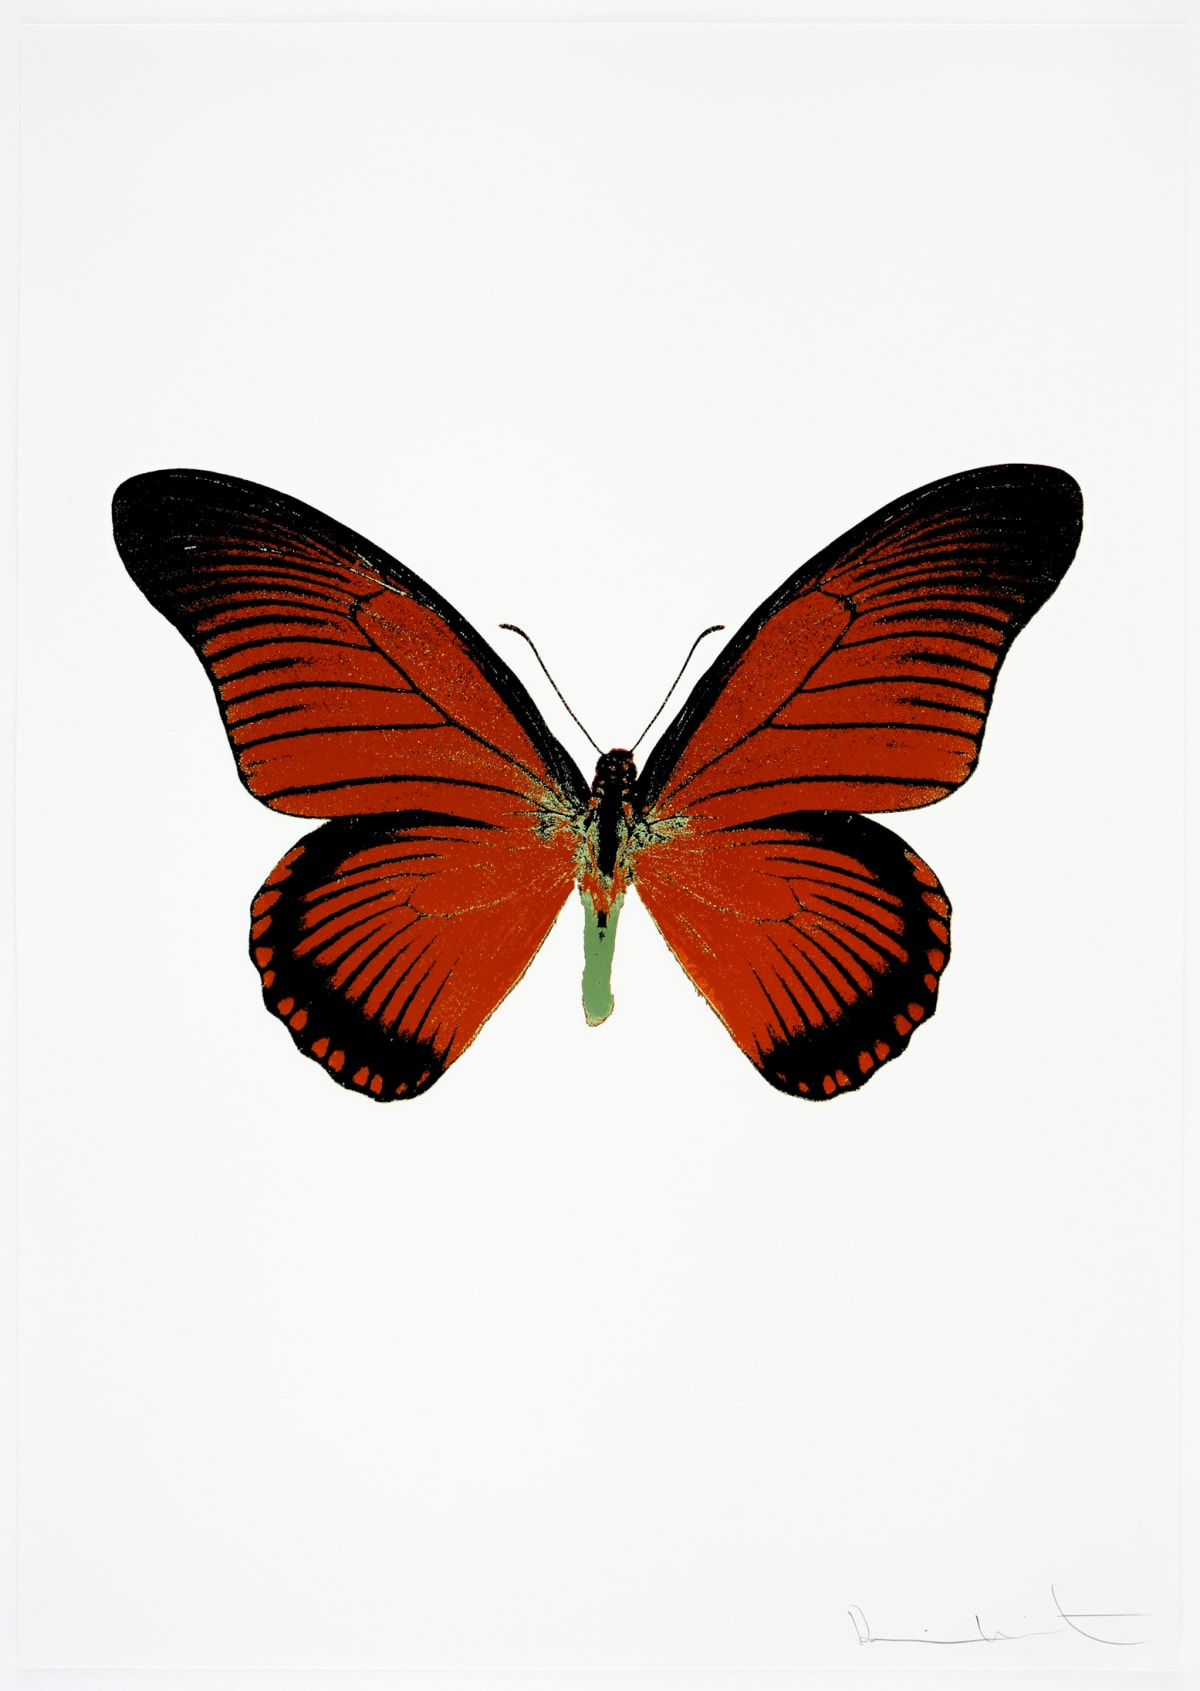 Damien Hirst The Souls IV - Prairie Copper/Raven Black/Leaf Green, 2010 3 colour foil block on 300gsm Arches 88 archival paper. Signed and numbered. Published by Paul Stolper and Other Criteria 72 x 51cm OC8006 / 1418-29 Edition of 15